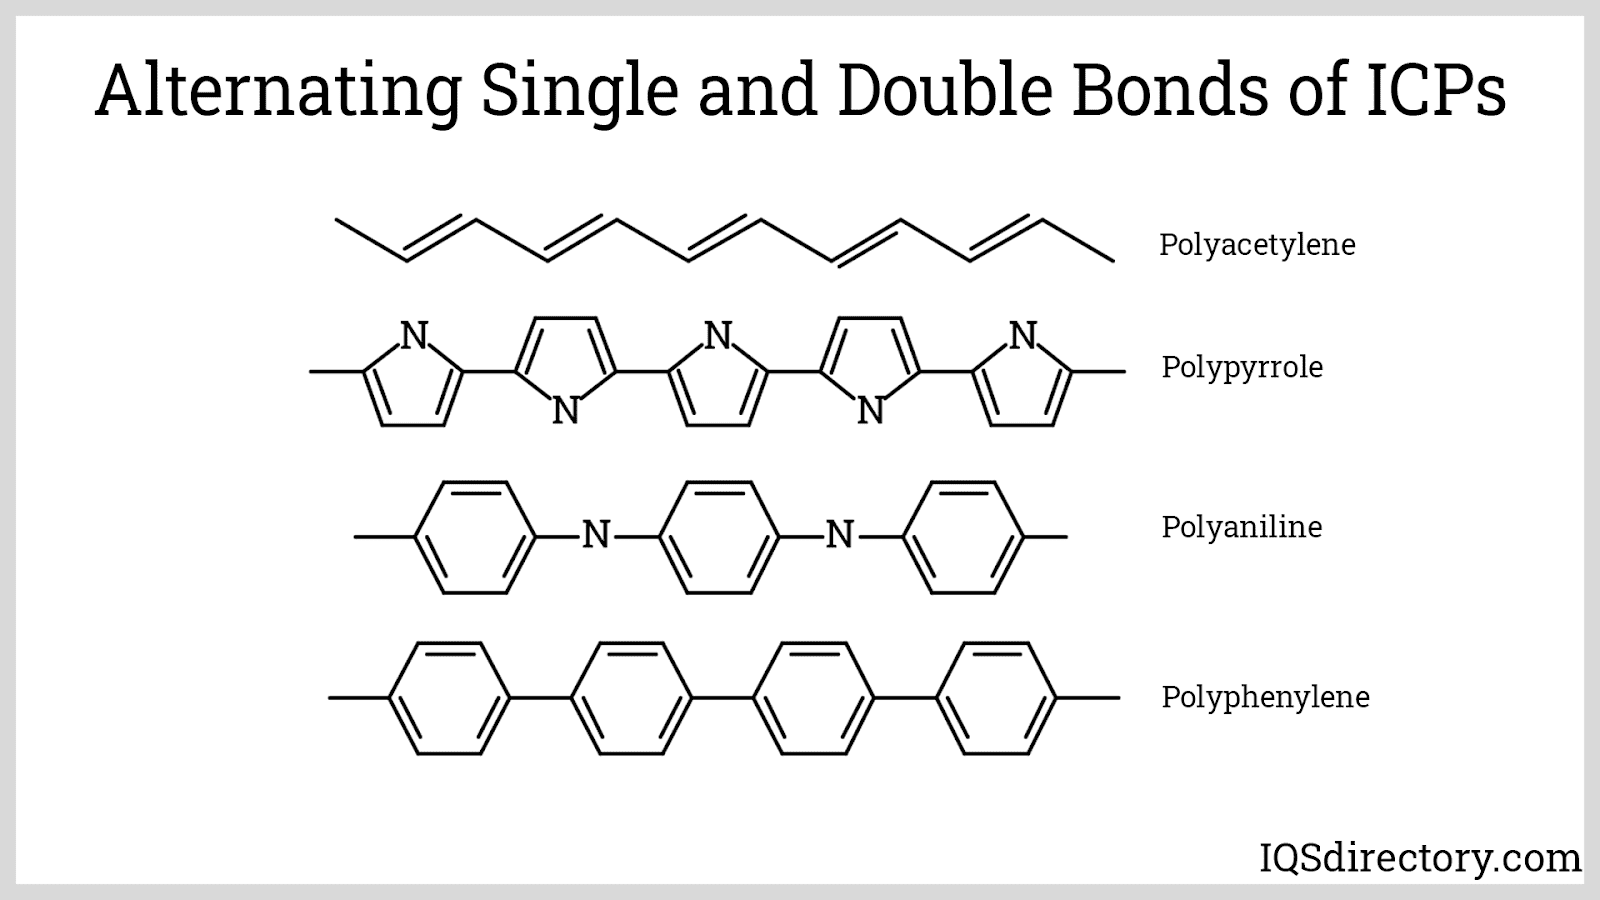 Alternating Single and Double Bonds of ICPs